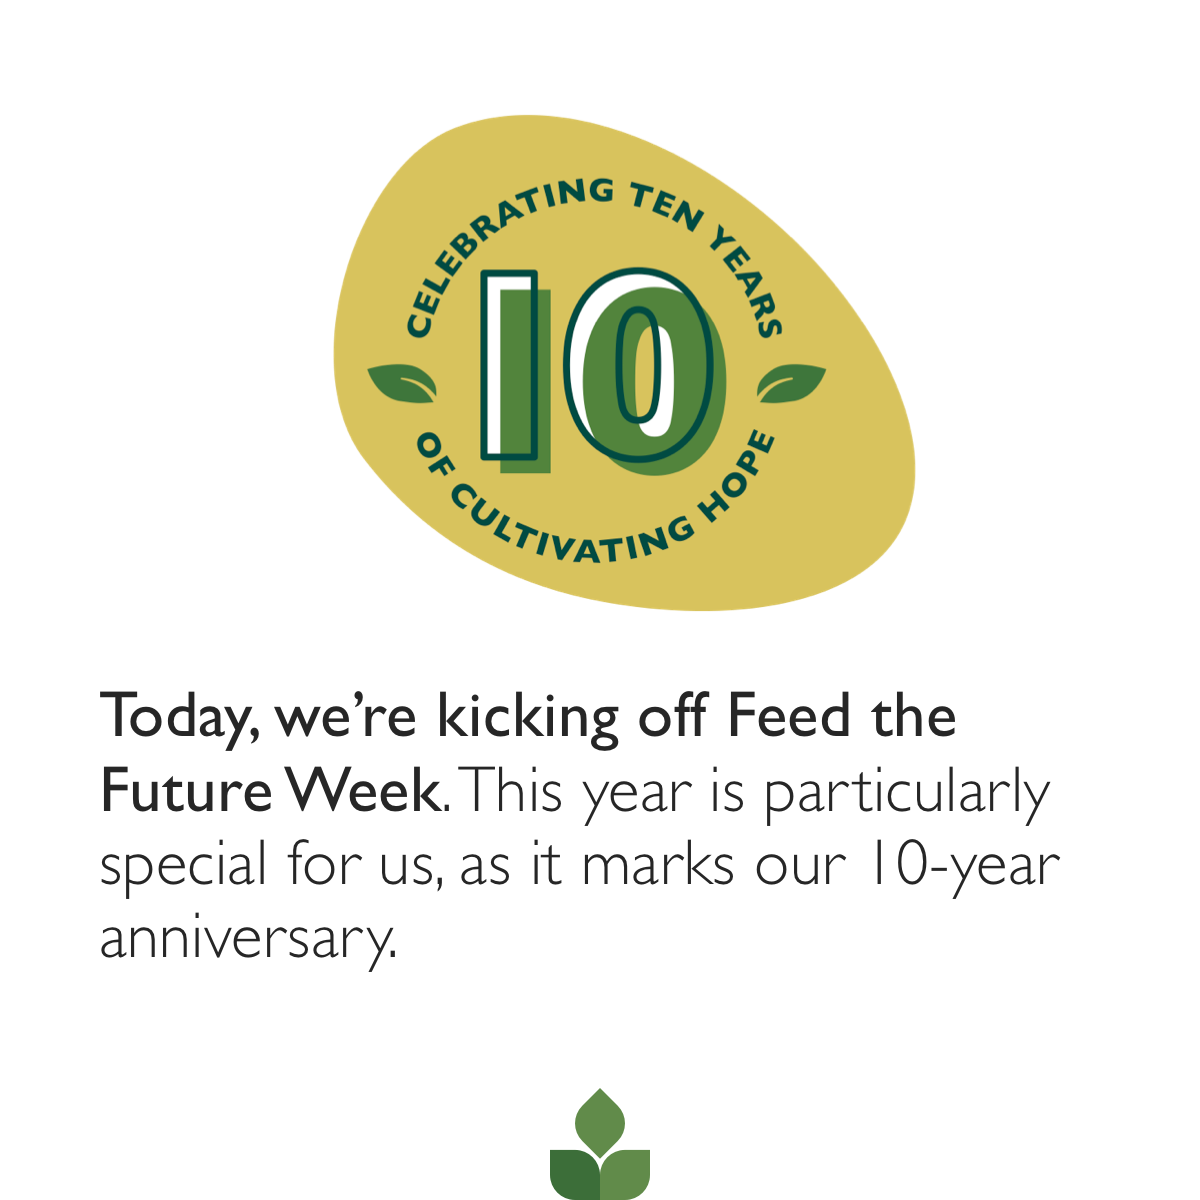 Today, we're kicking off Feed the Future Week. This year is particularly special for us, as it marks our 10year anniversary.